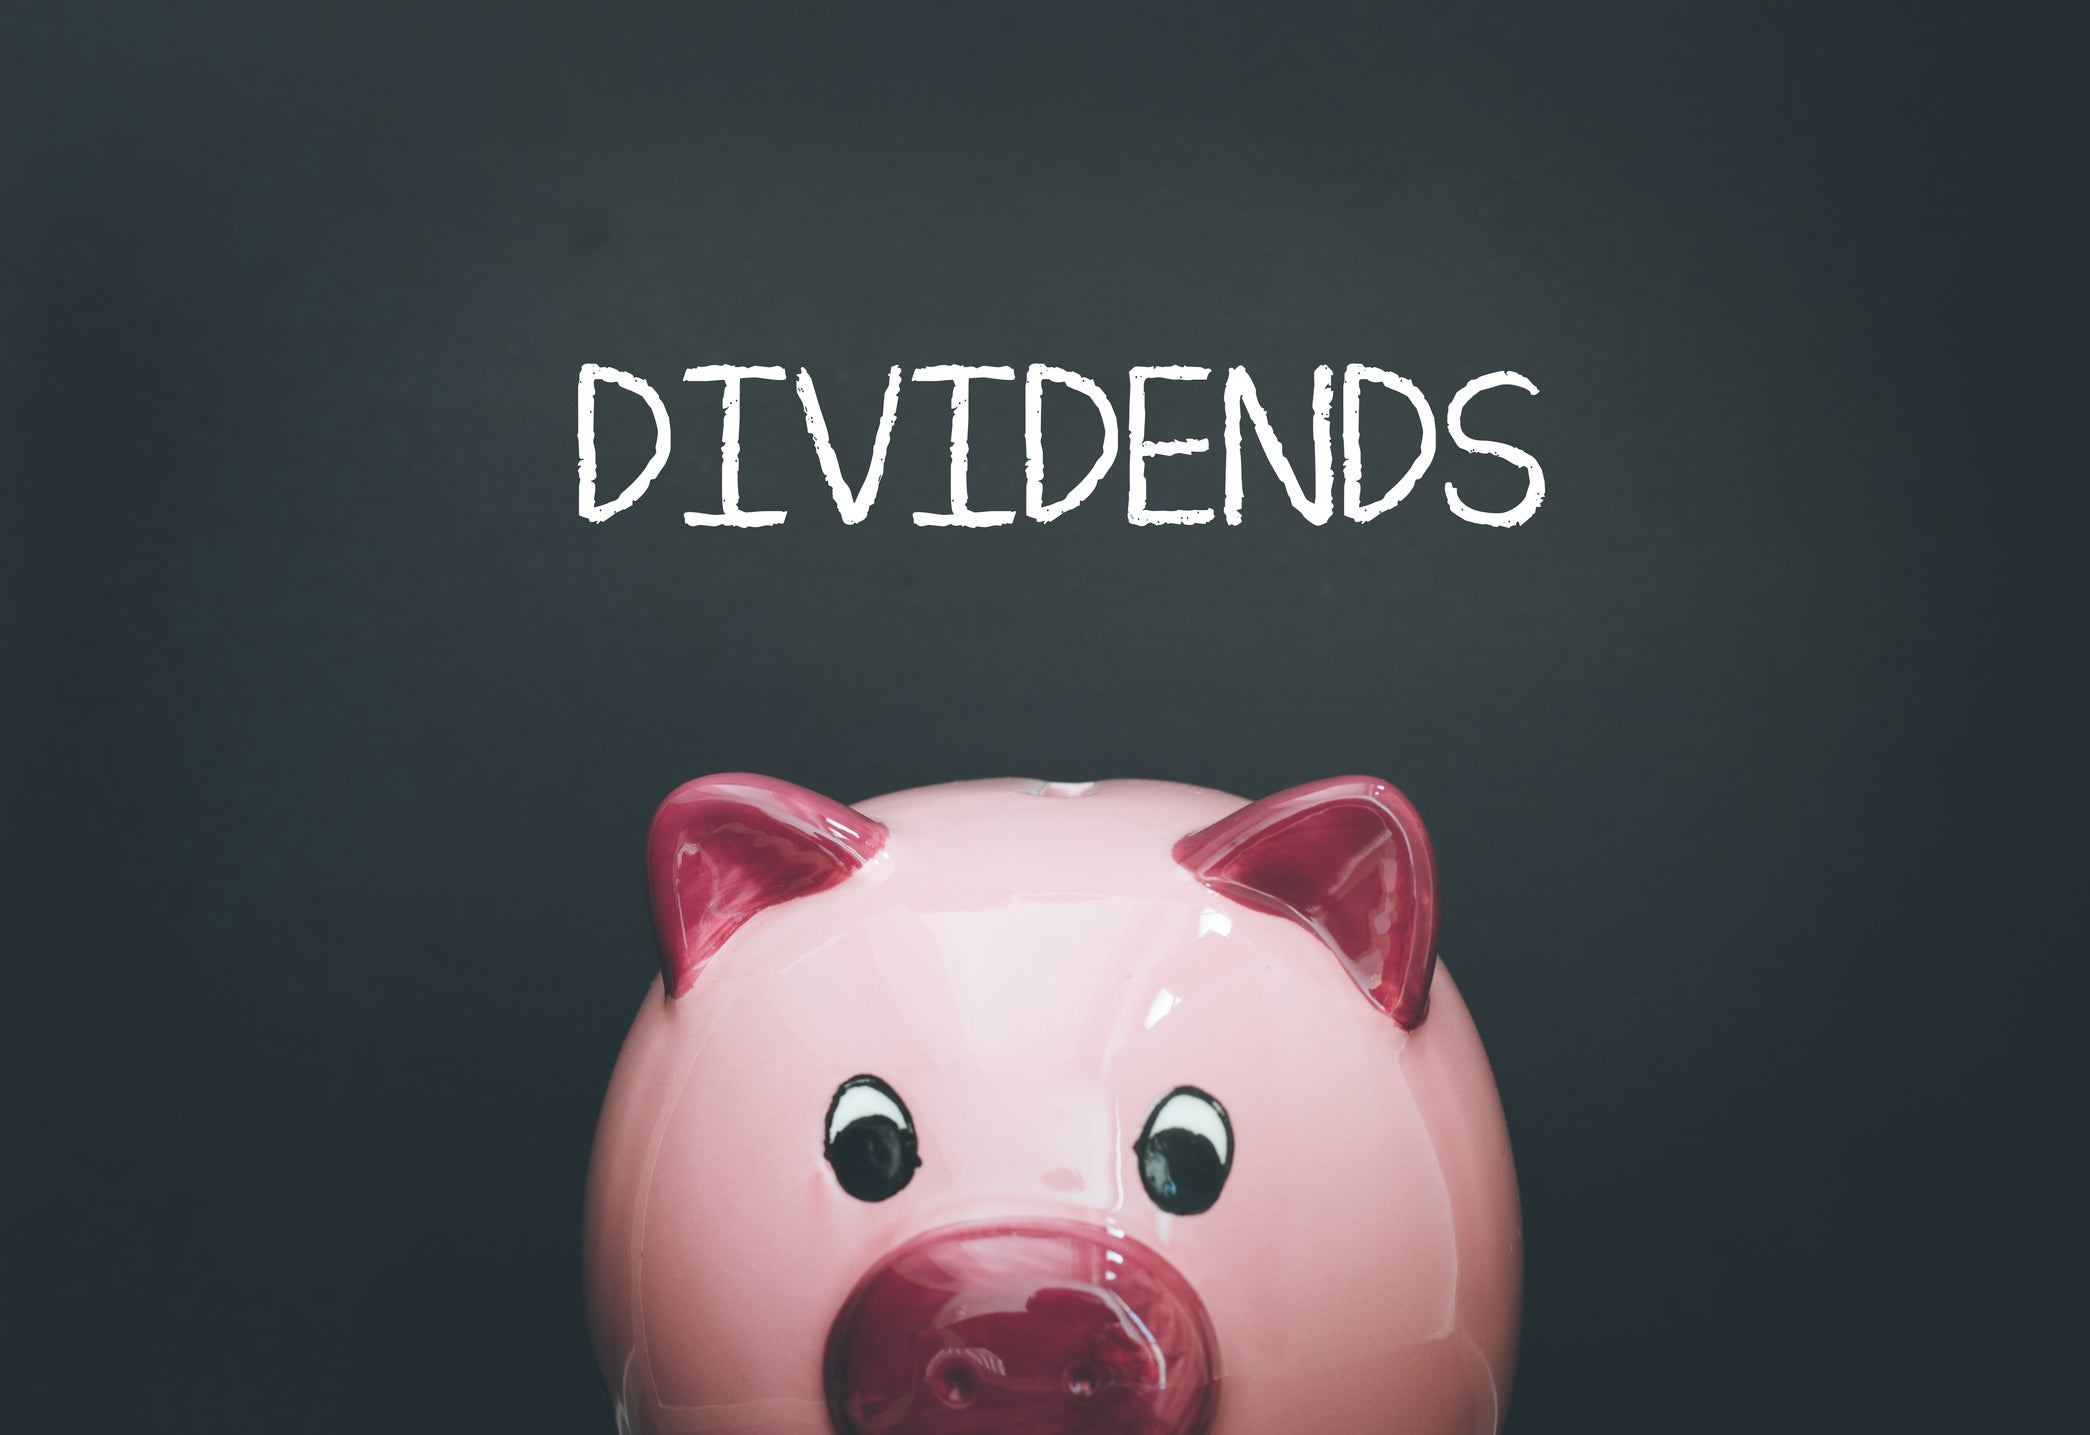 These 3 Dividend Stocks Are Now Yielding Up to 20% | The Motley Fool